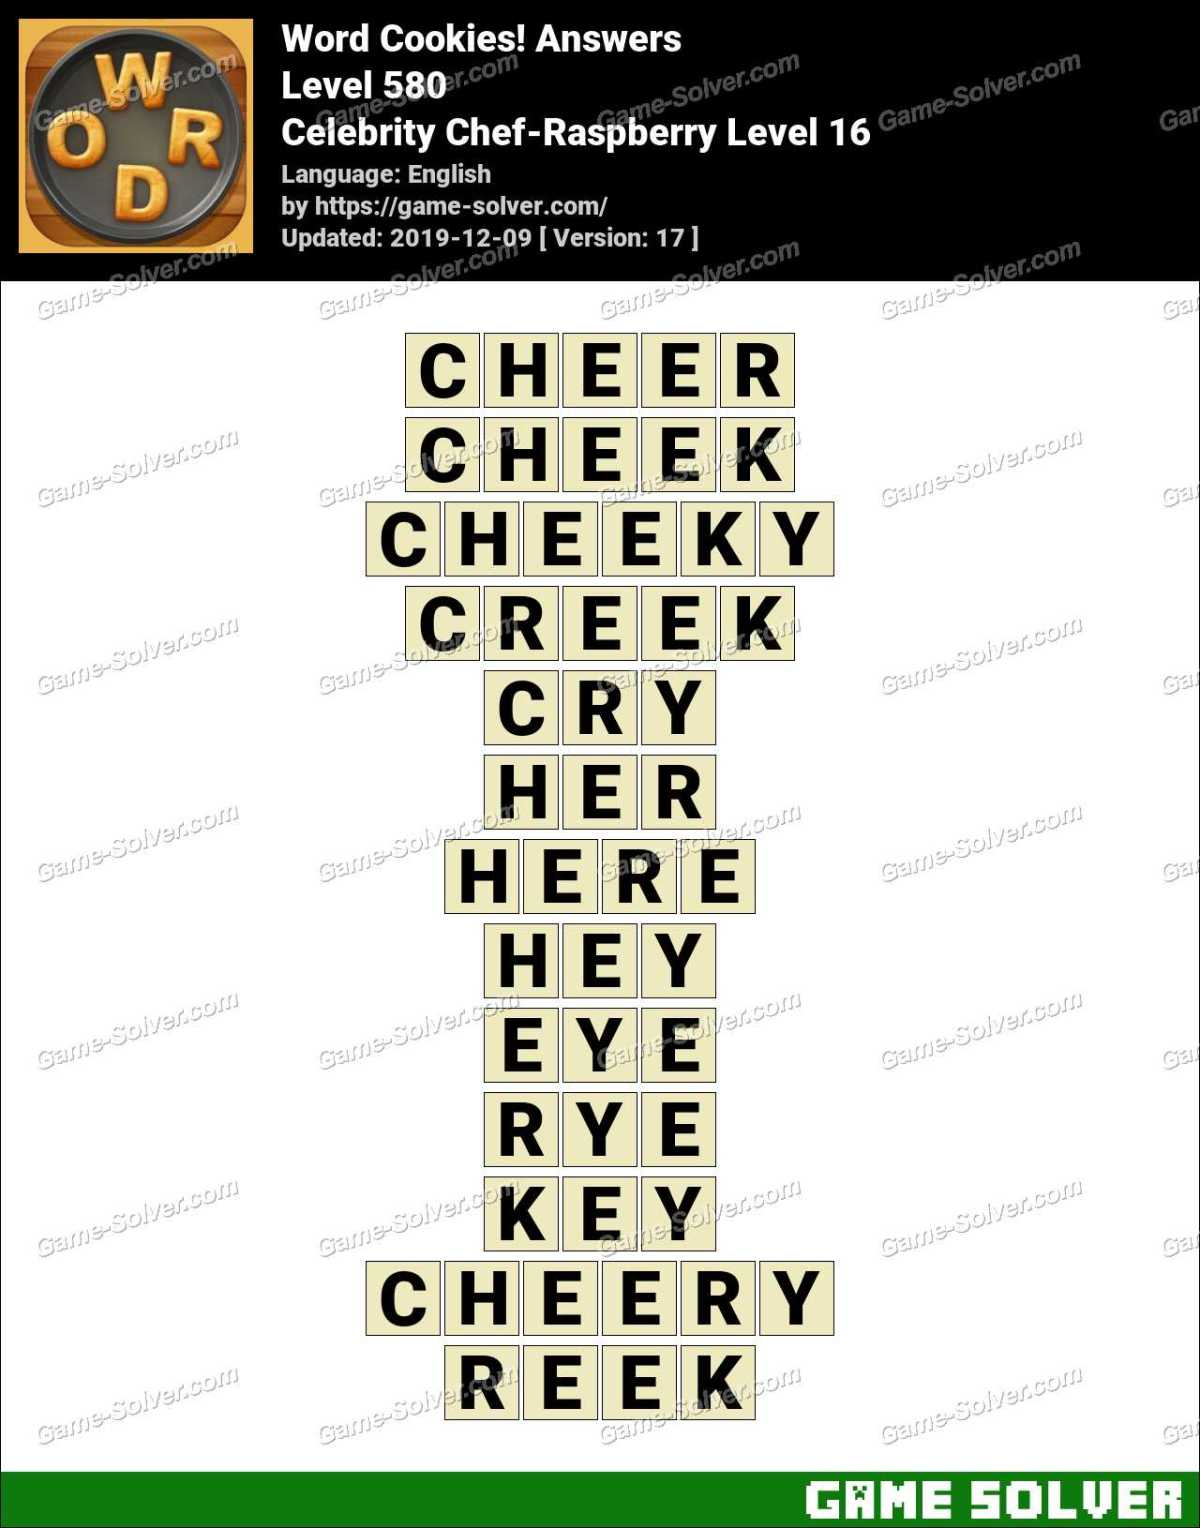 Word Cookies Celebrity Chef-Raspberry Level 16 Answers